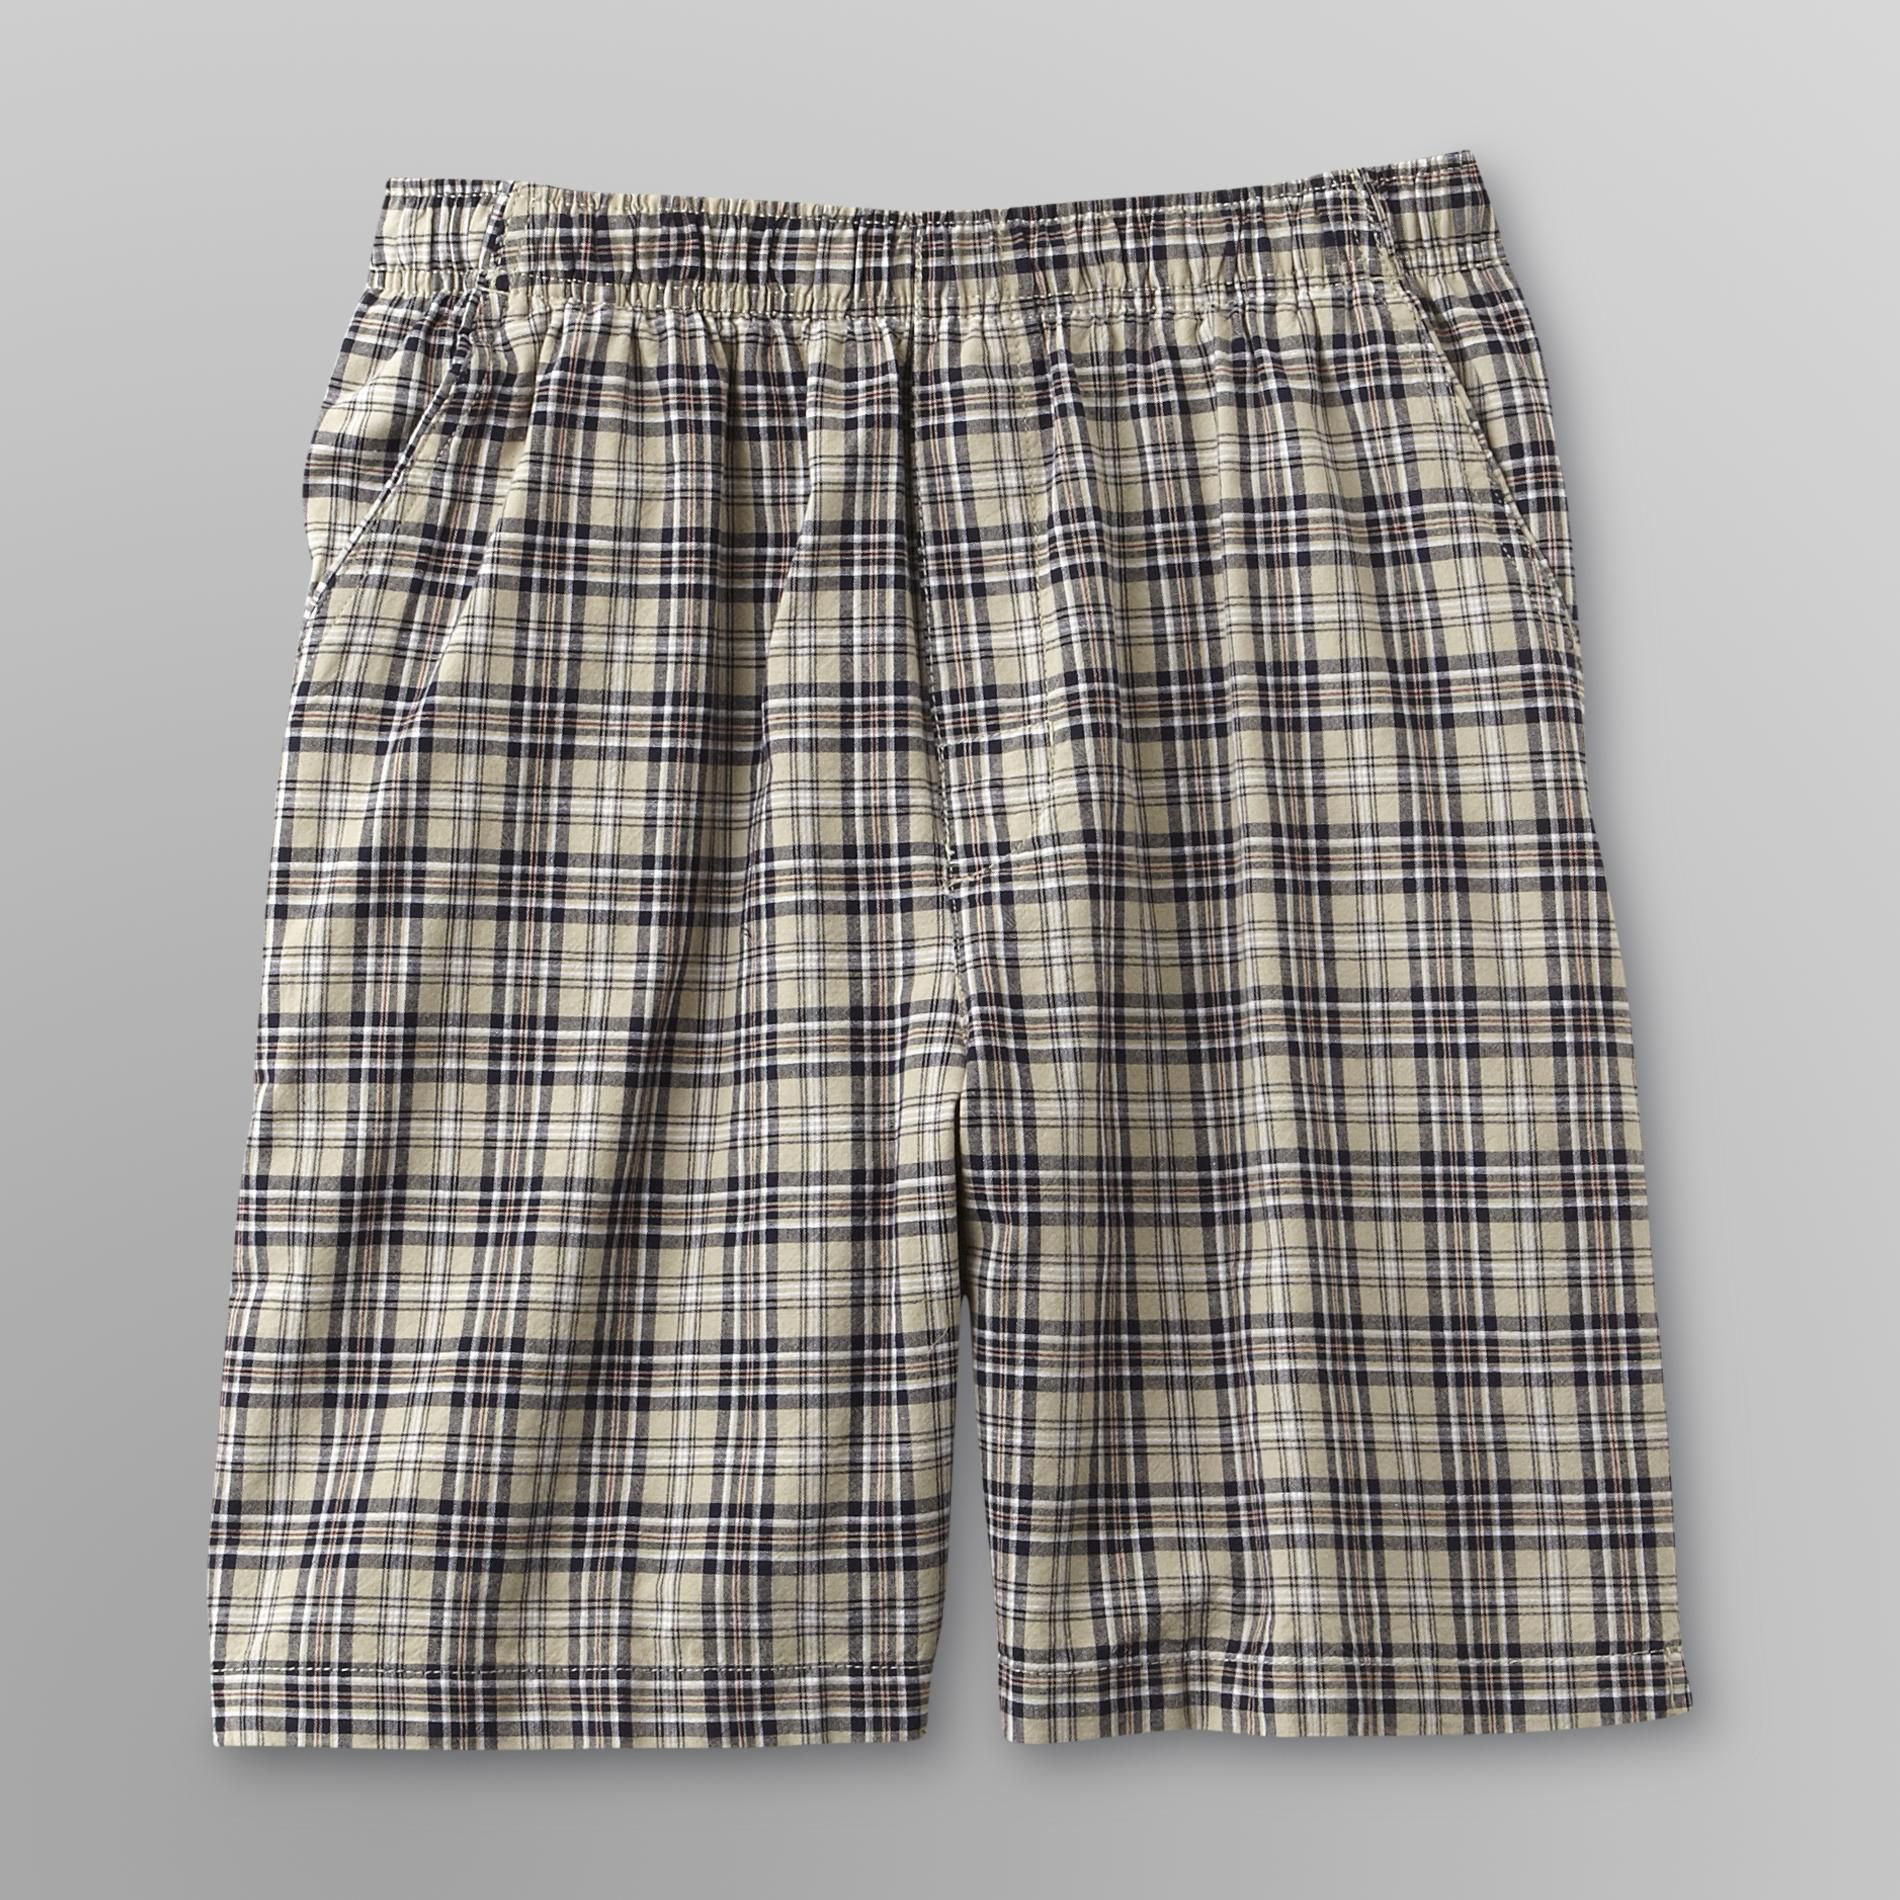 Basic Editions Men's Woven Shorts - Plaid at Kmart.com